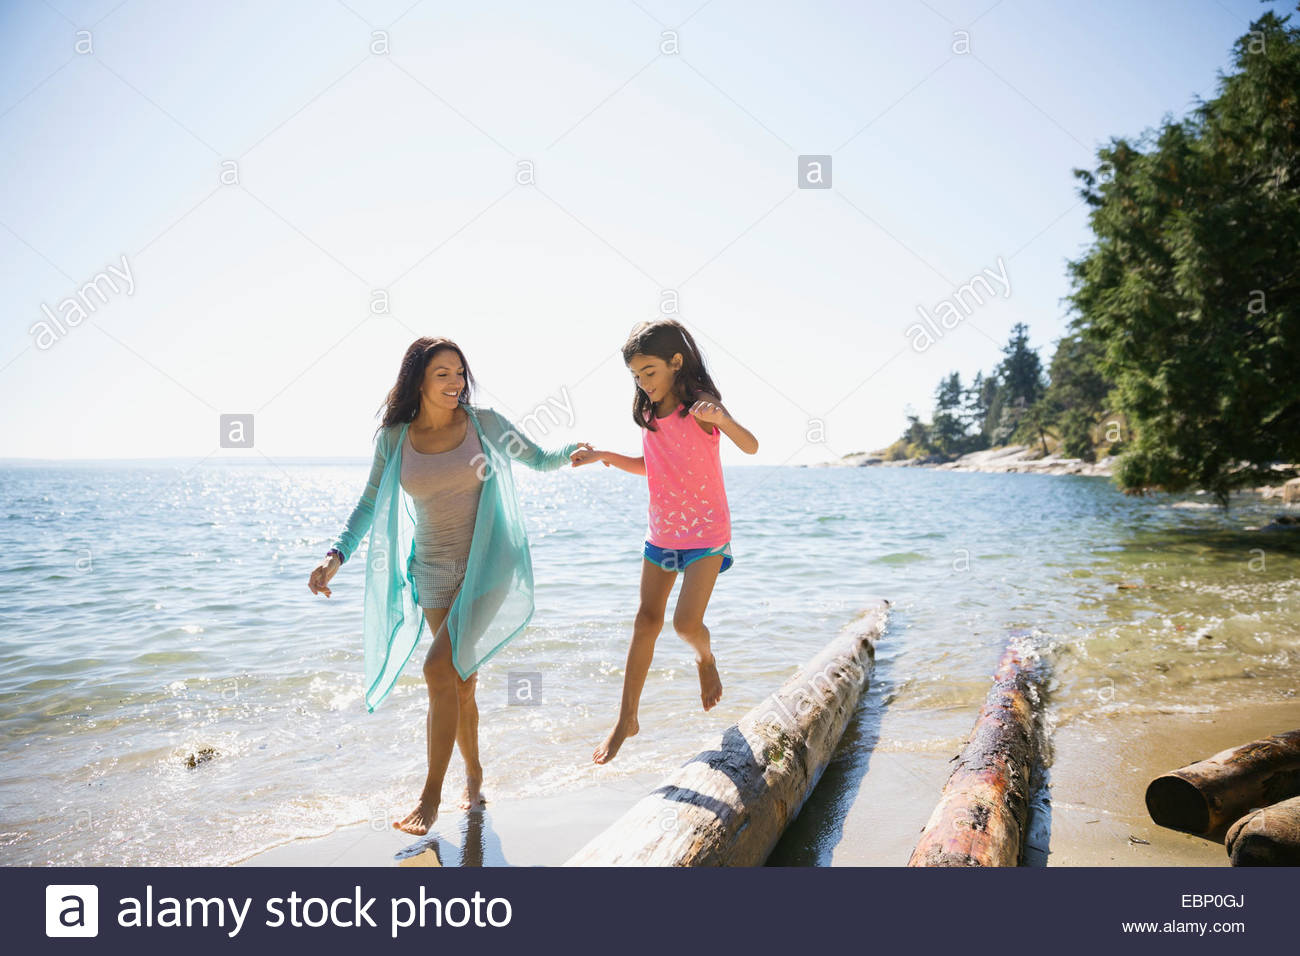 Mother and daughter walking on driftwood at beach - Stock Image